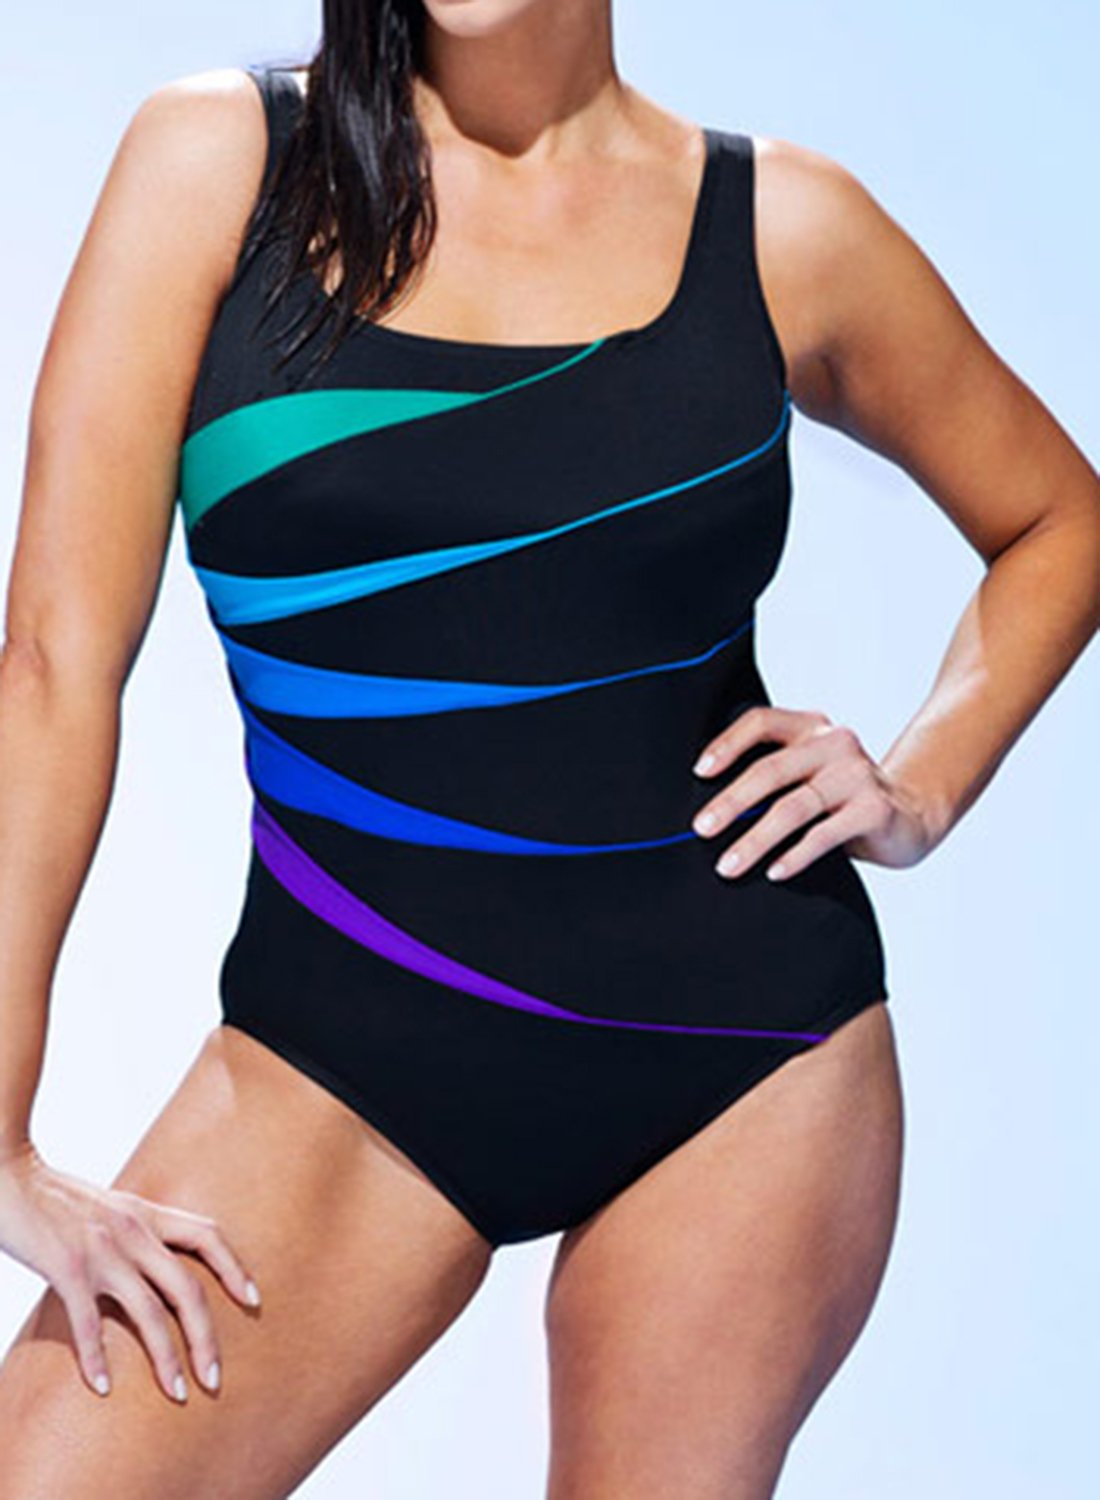 LONGITUDE CHLORINE RESISTANT FAN TANK ONE PIECE SWIMSUIT choichic.com